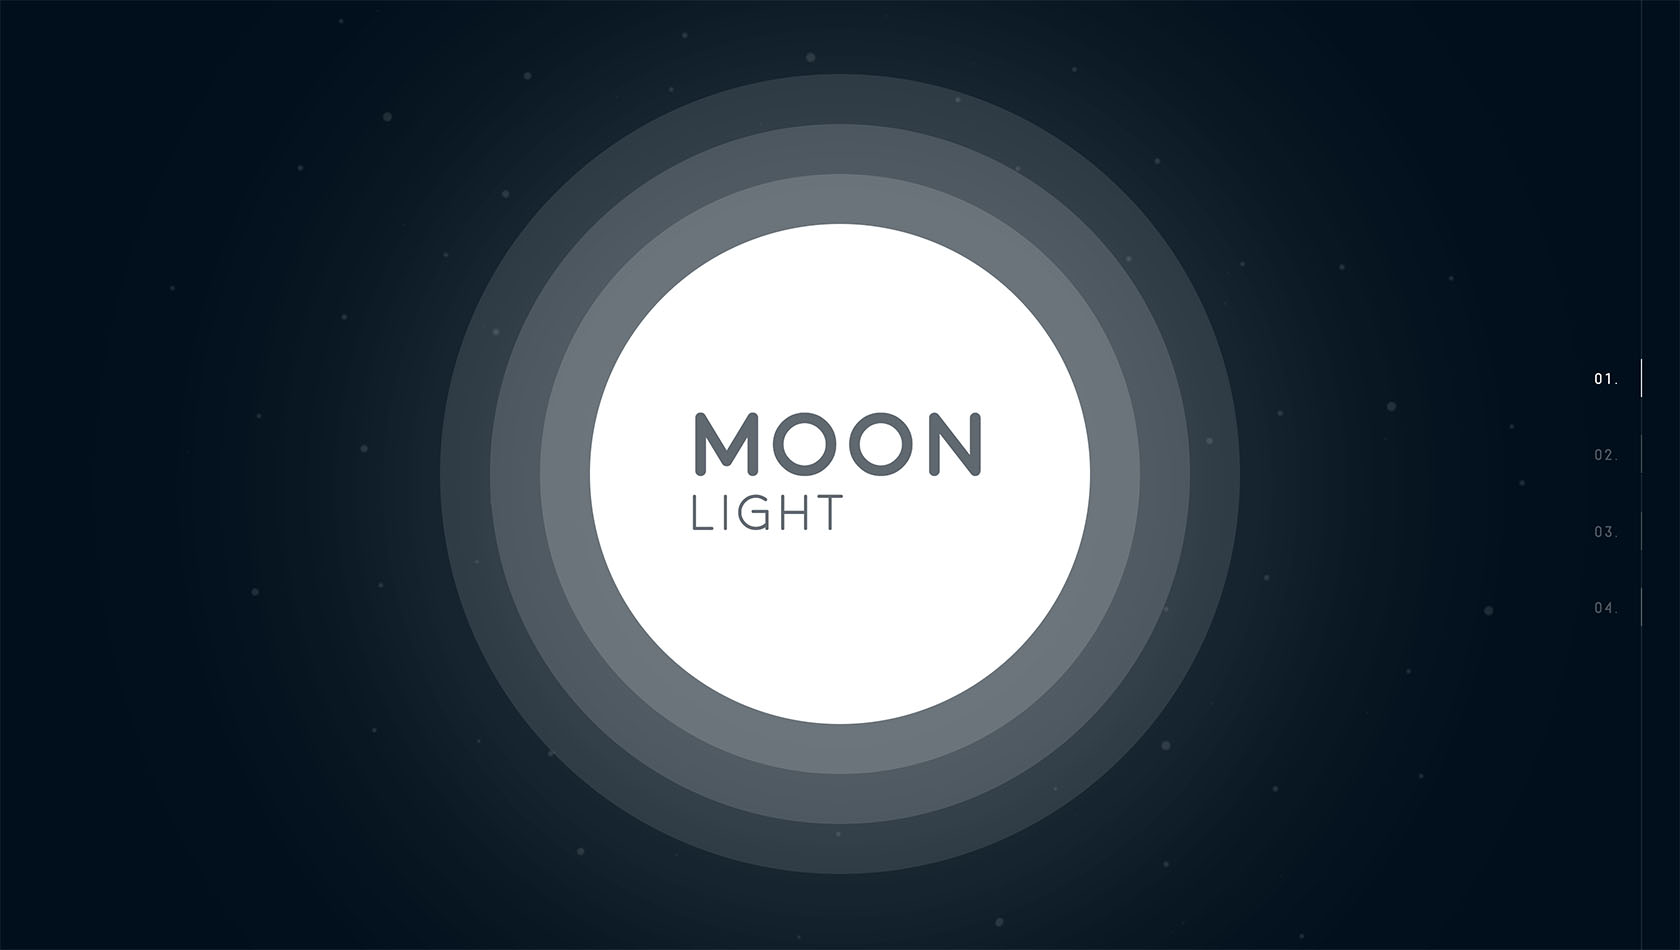 Web designer and Develoeper Project of Moonlight